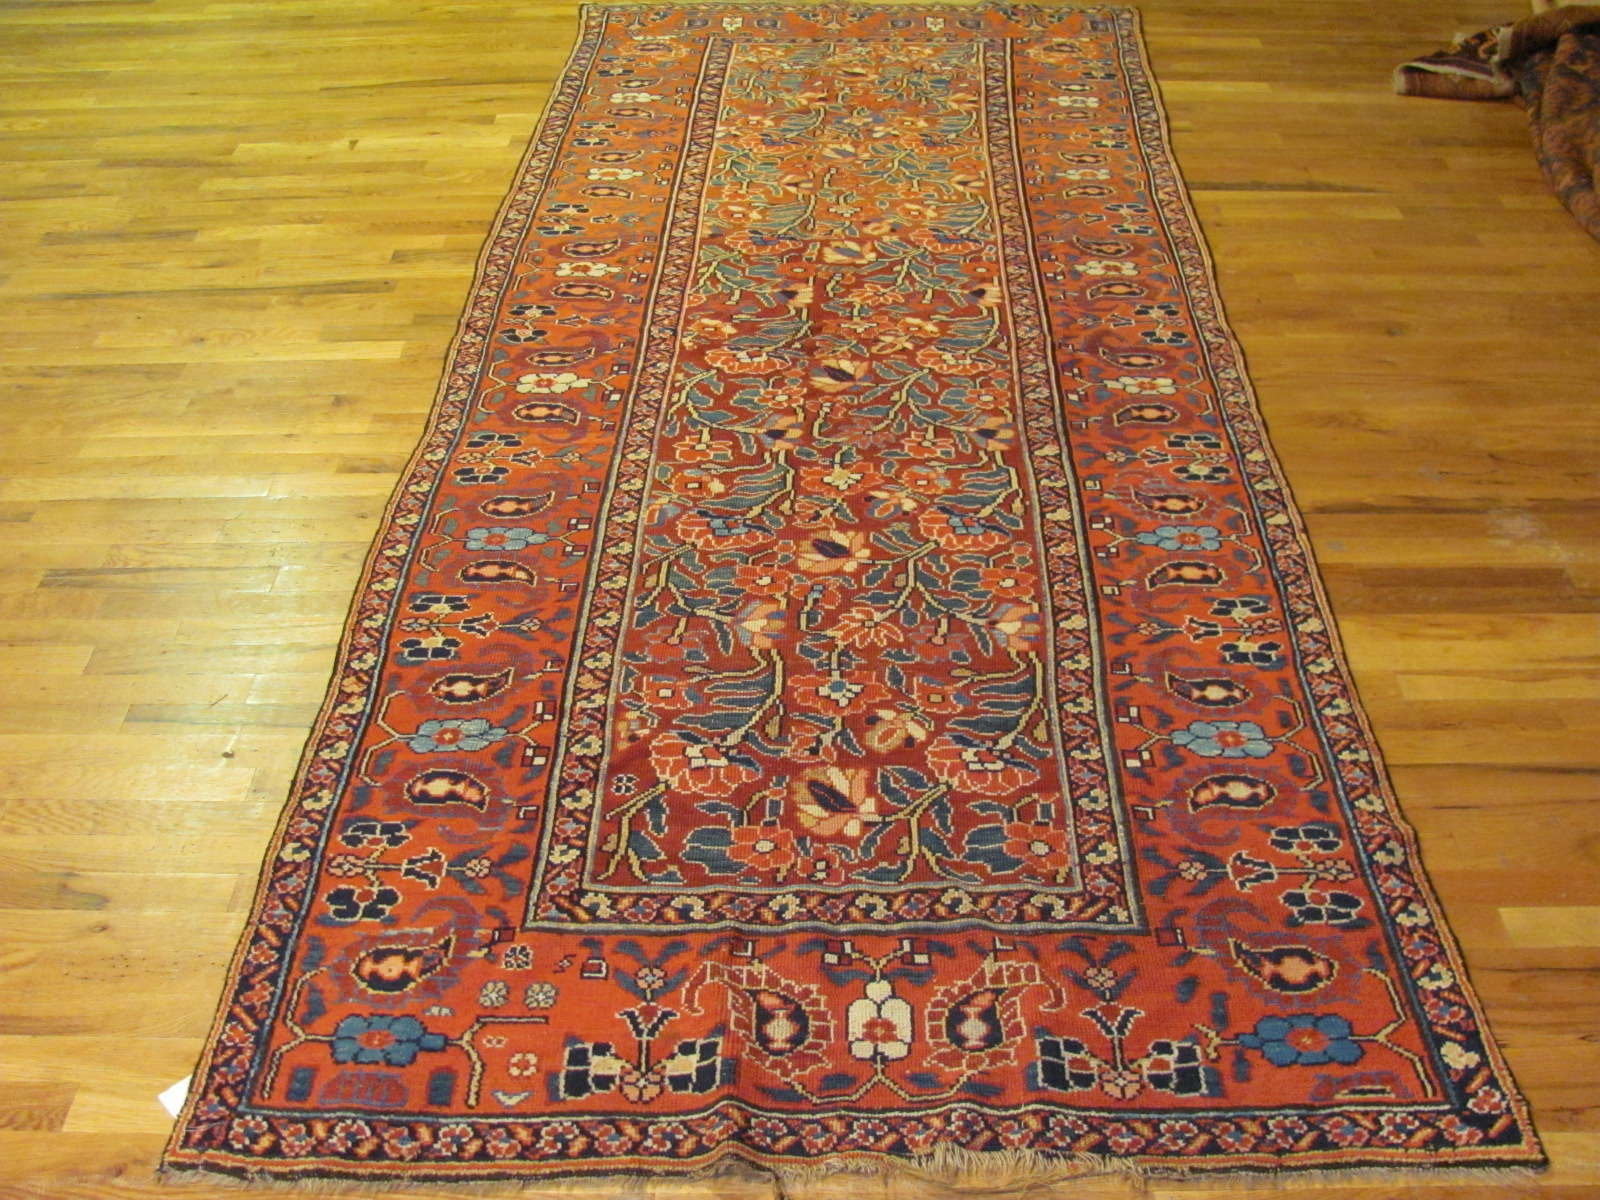 Kurd Rug | Northwest Persia | Handmade | Antique Circa 1880